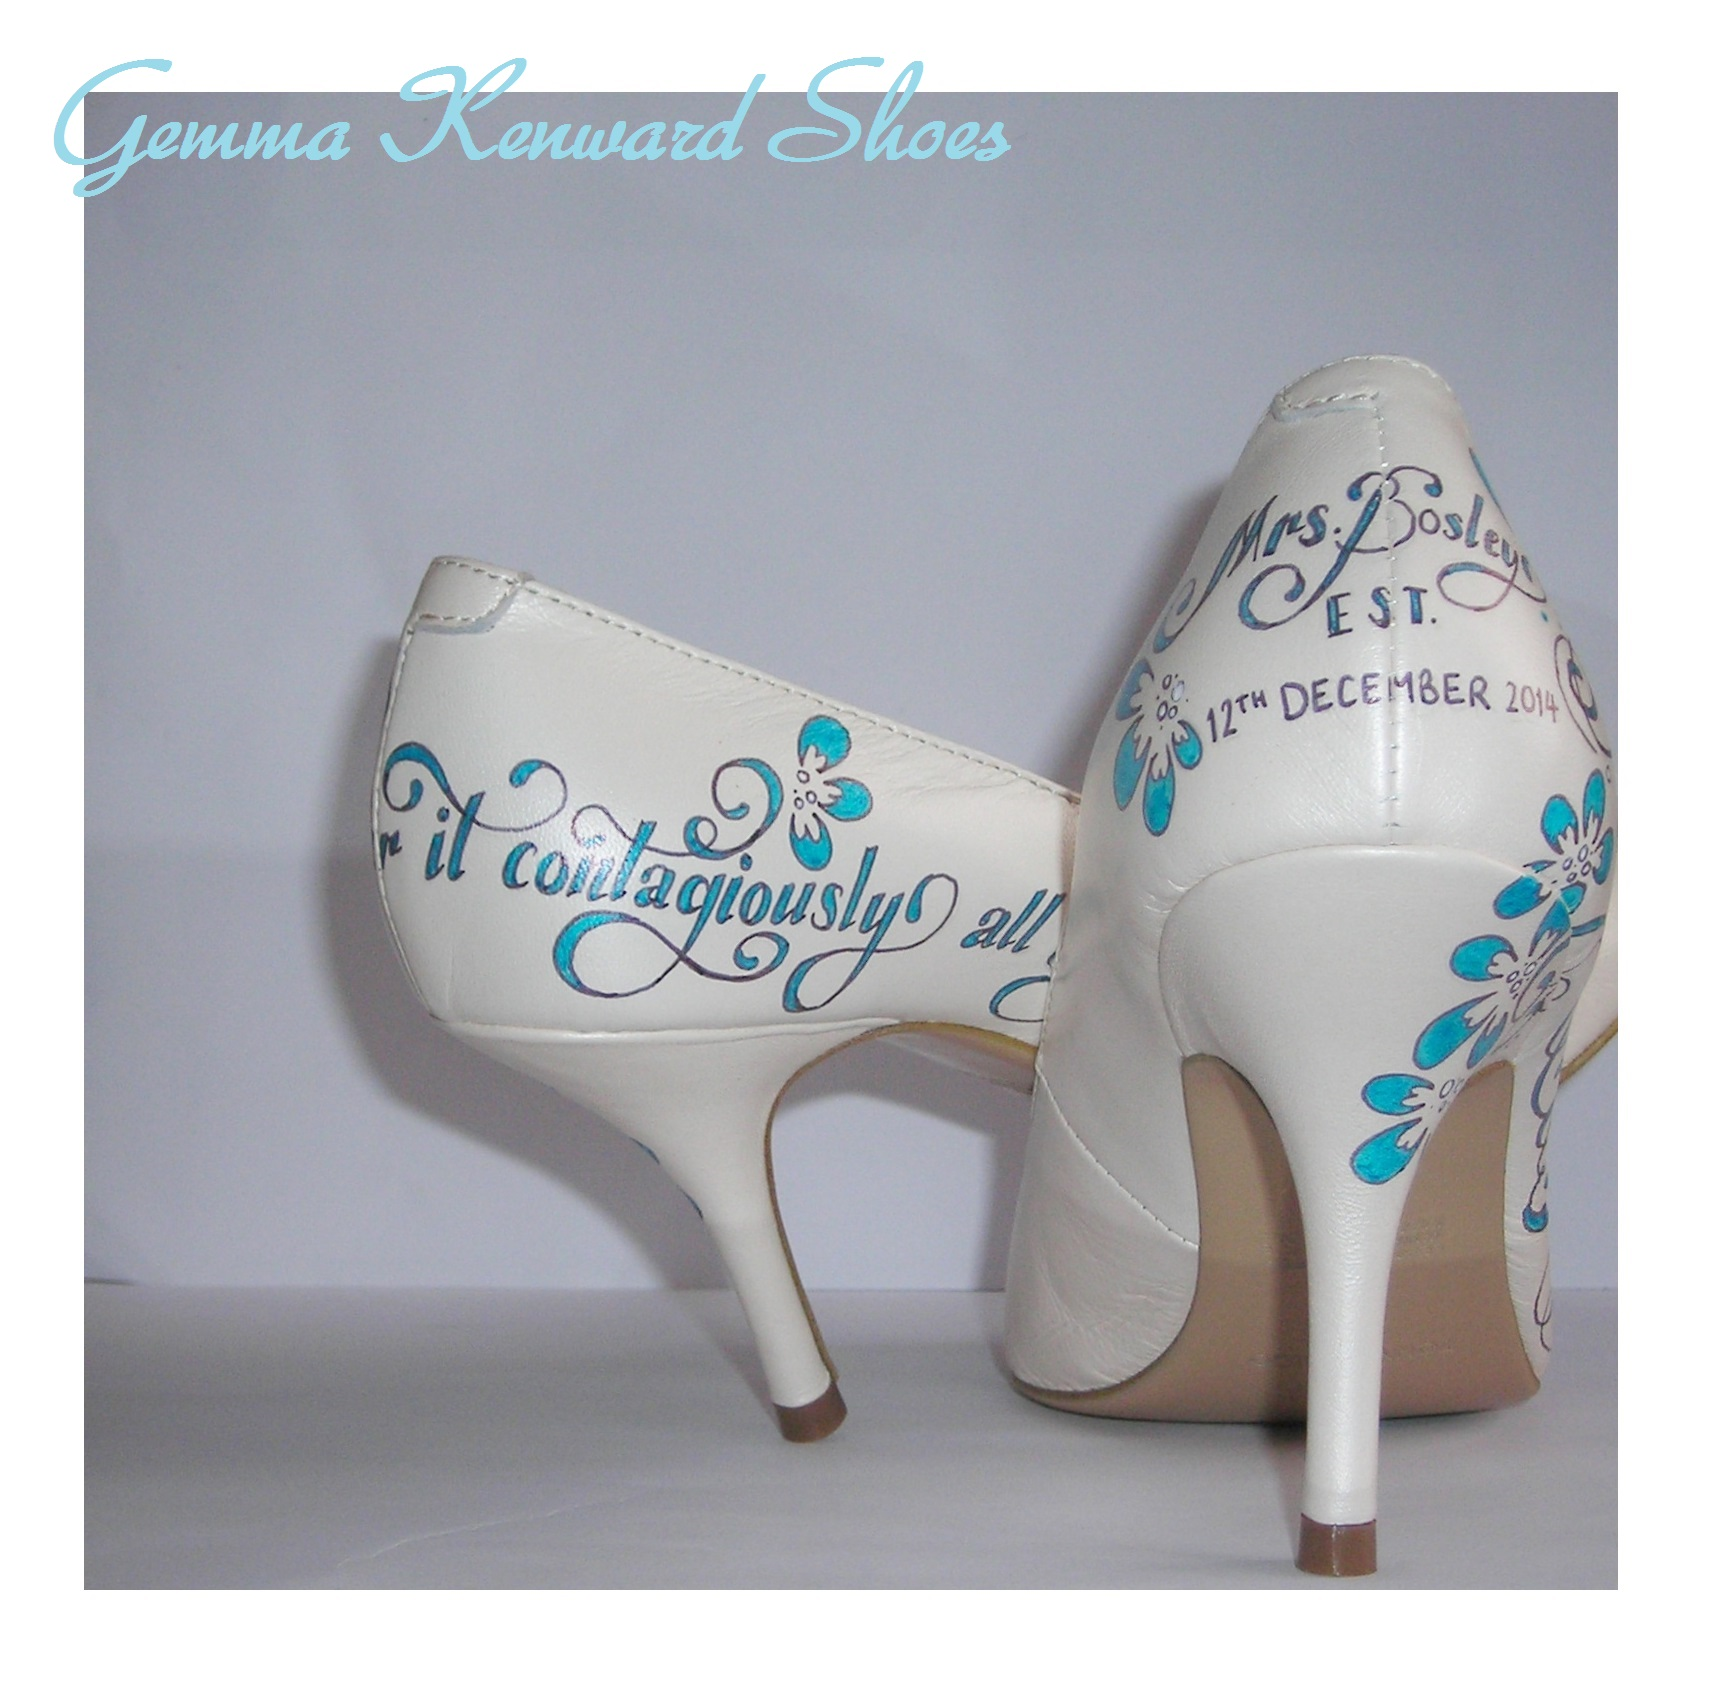 The back of the shoes 'Mrs. Bosley ~ Established 12th December 2014' What a fantastic idea to have on the shoes.